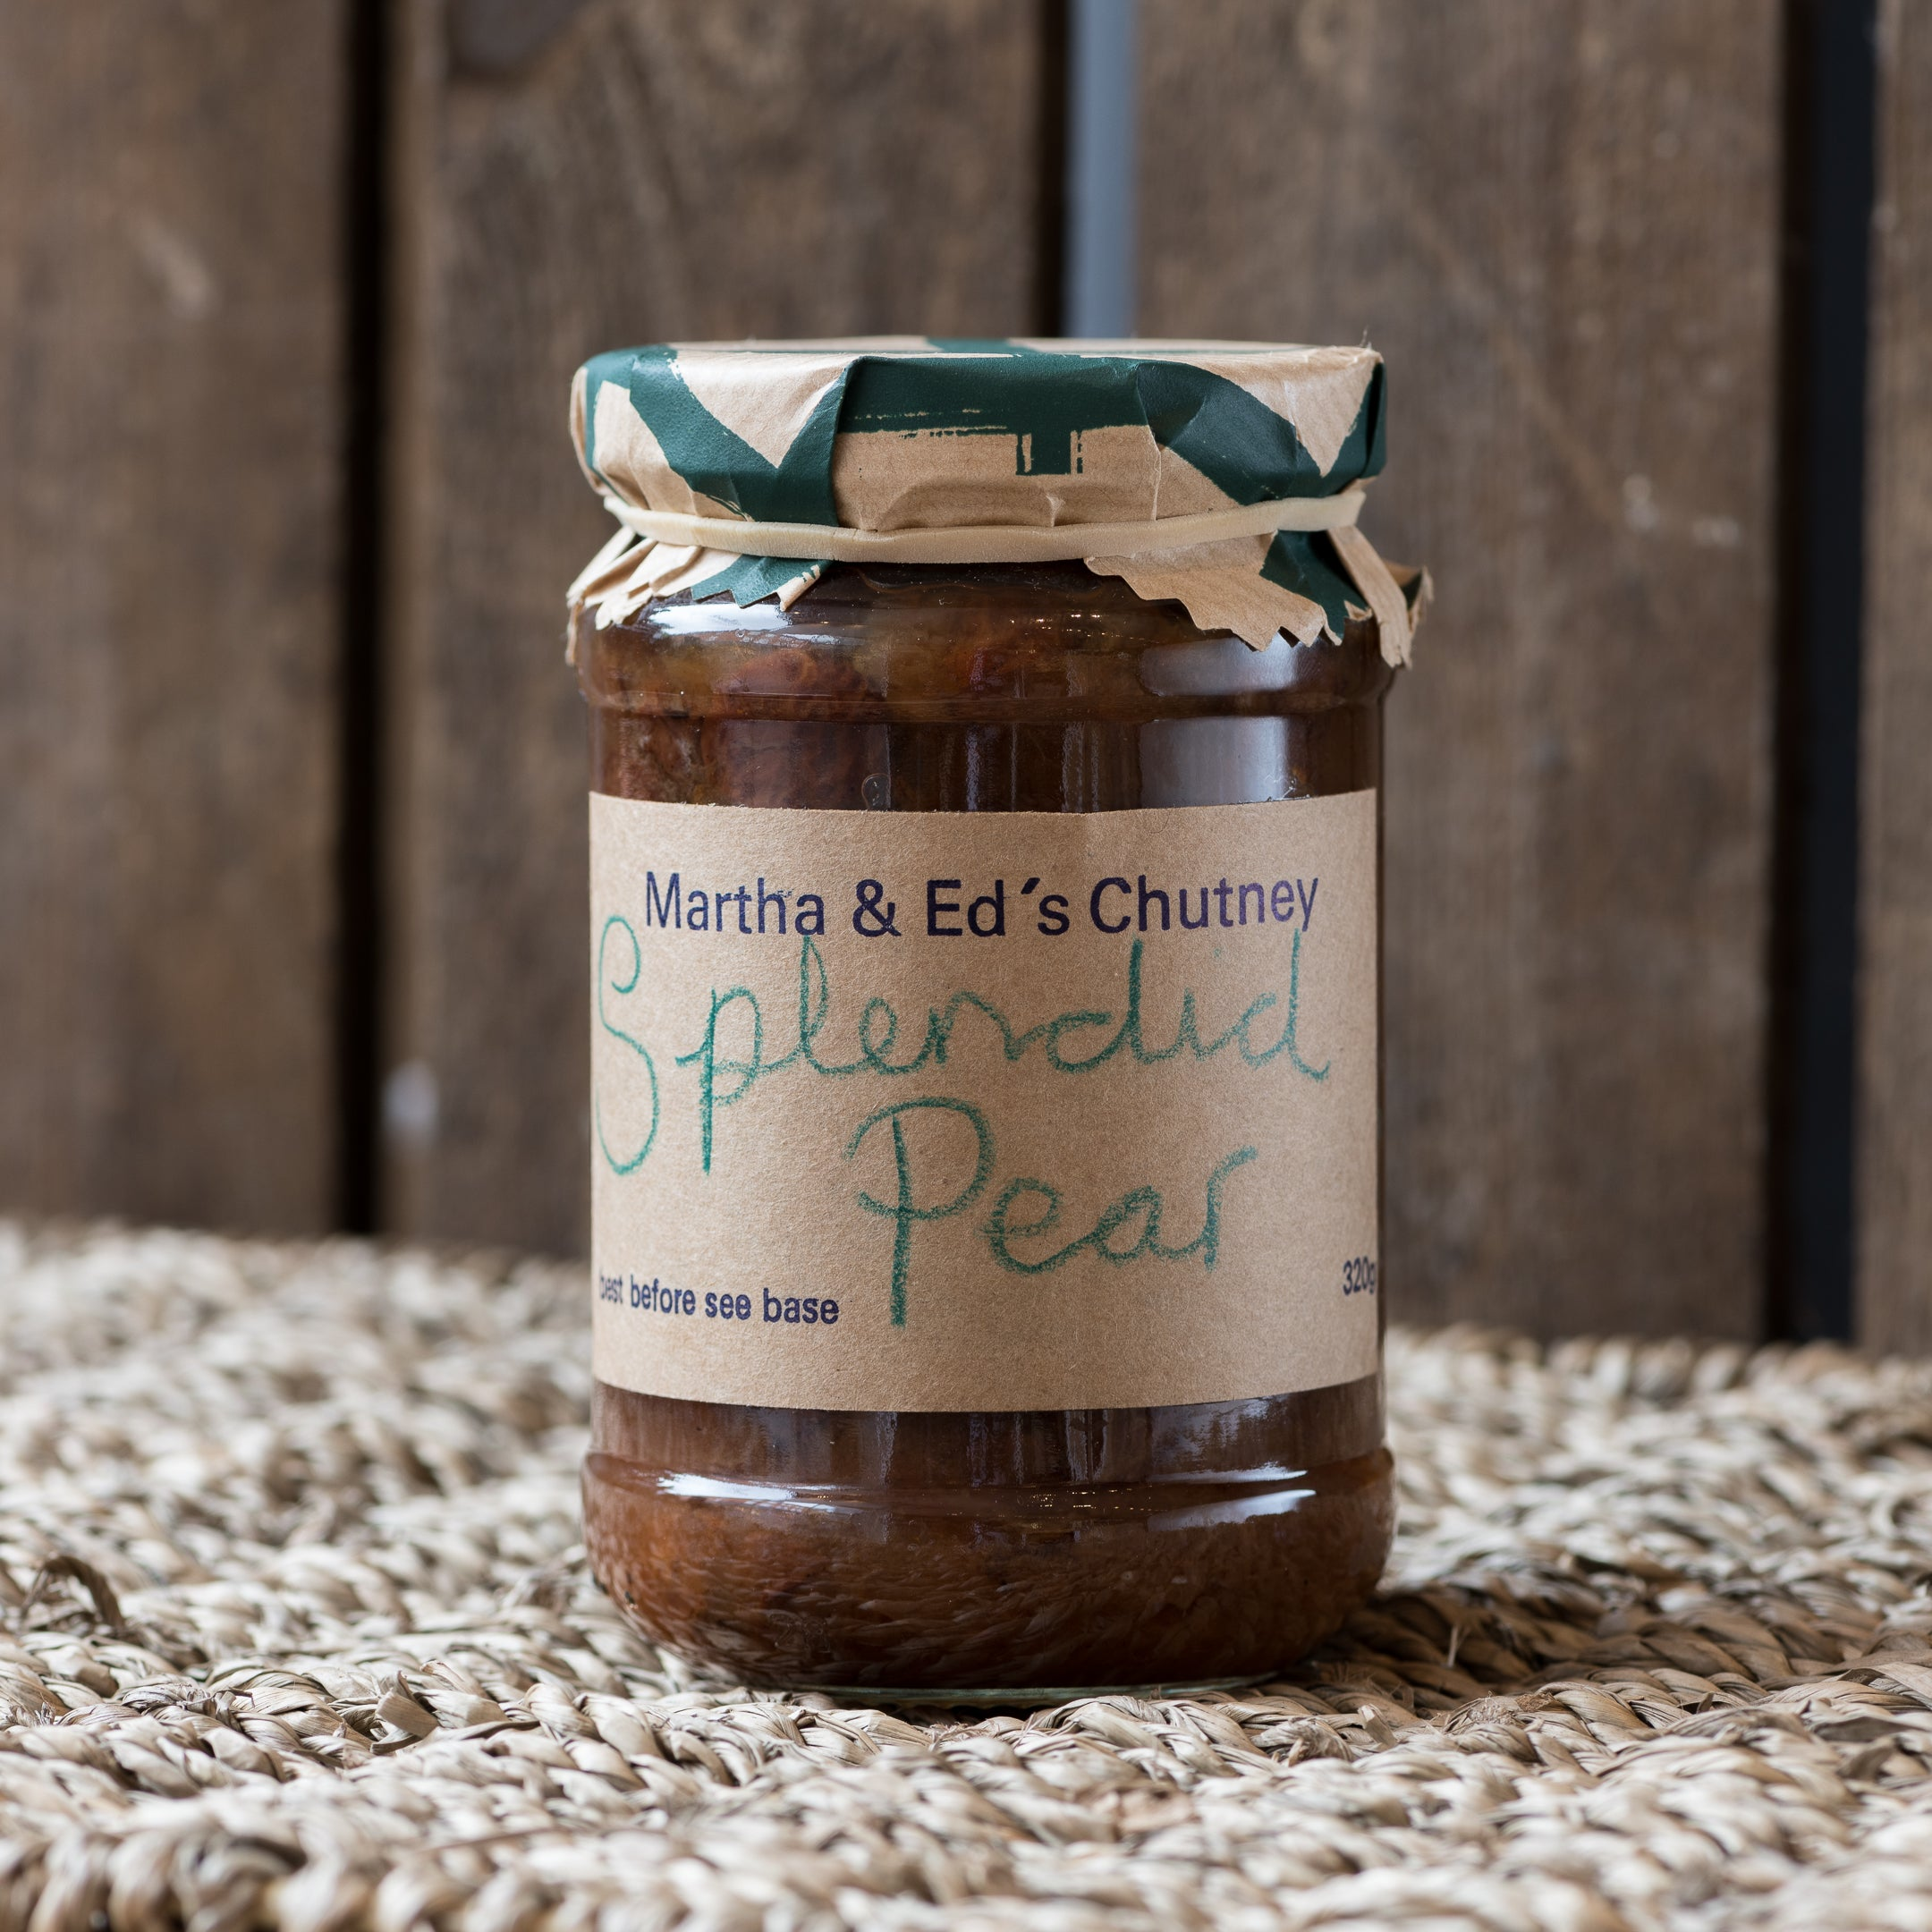 Splendid Pear Chutney